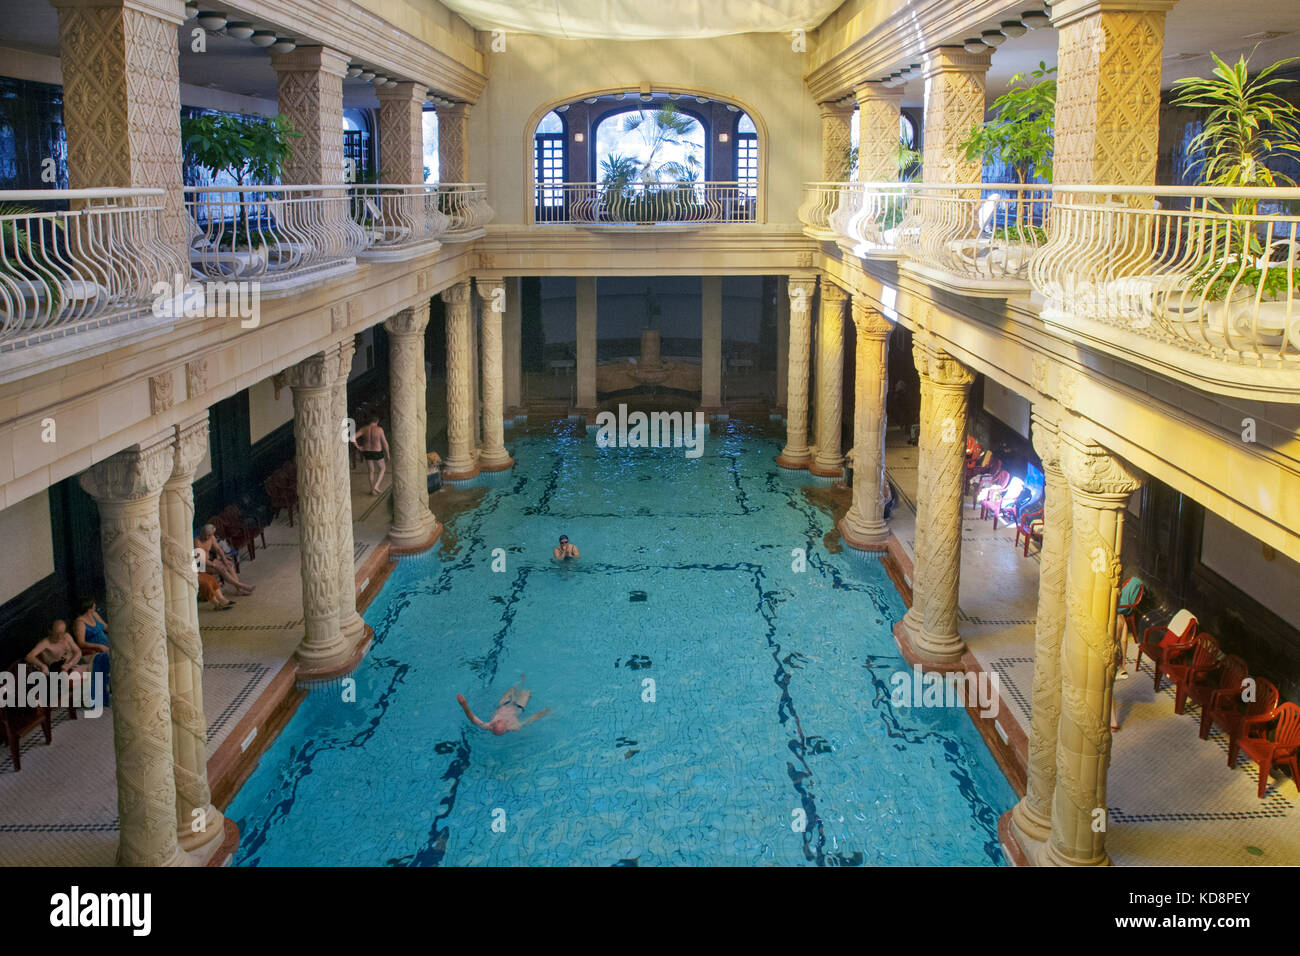 Baños Gellert Budapest Gellert Bad Stock Photos And Gellert Bad Stock Images Alamy